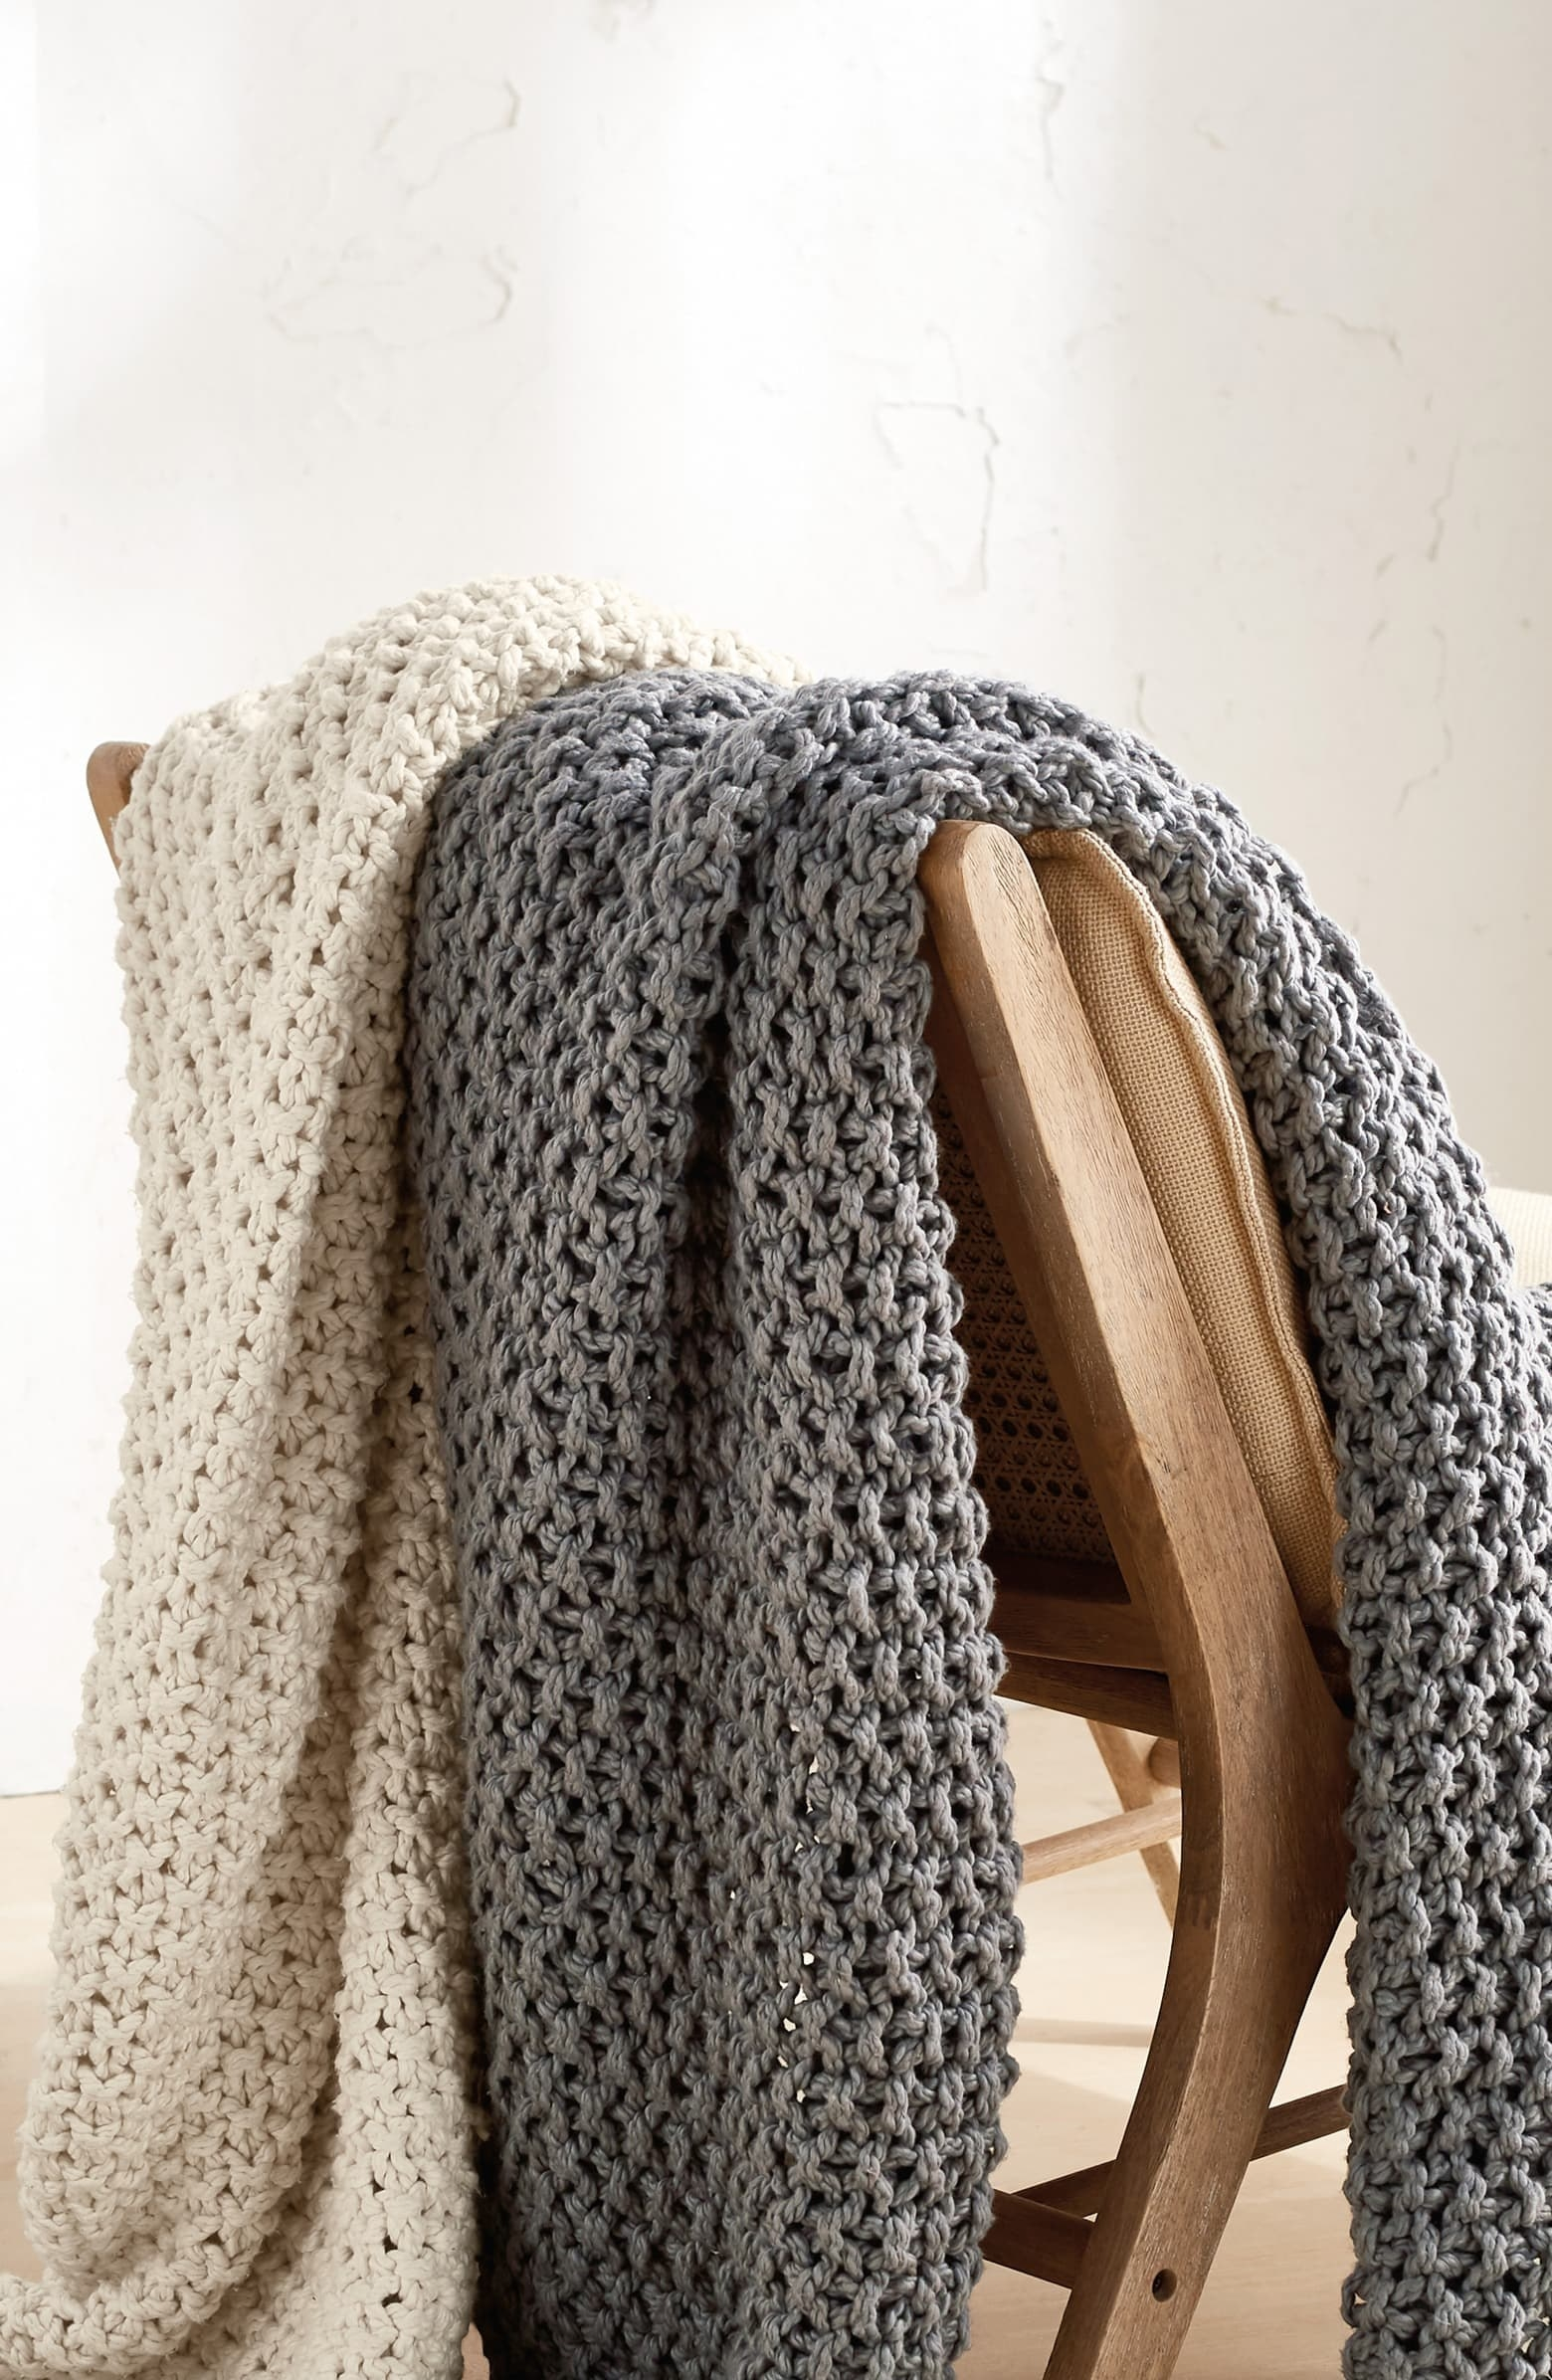 tan and grey knit blankets hanging over a chair